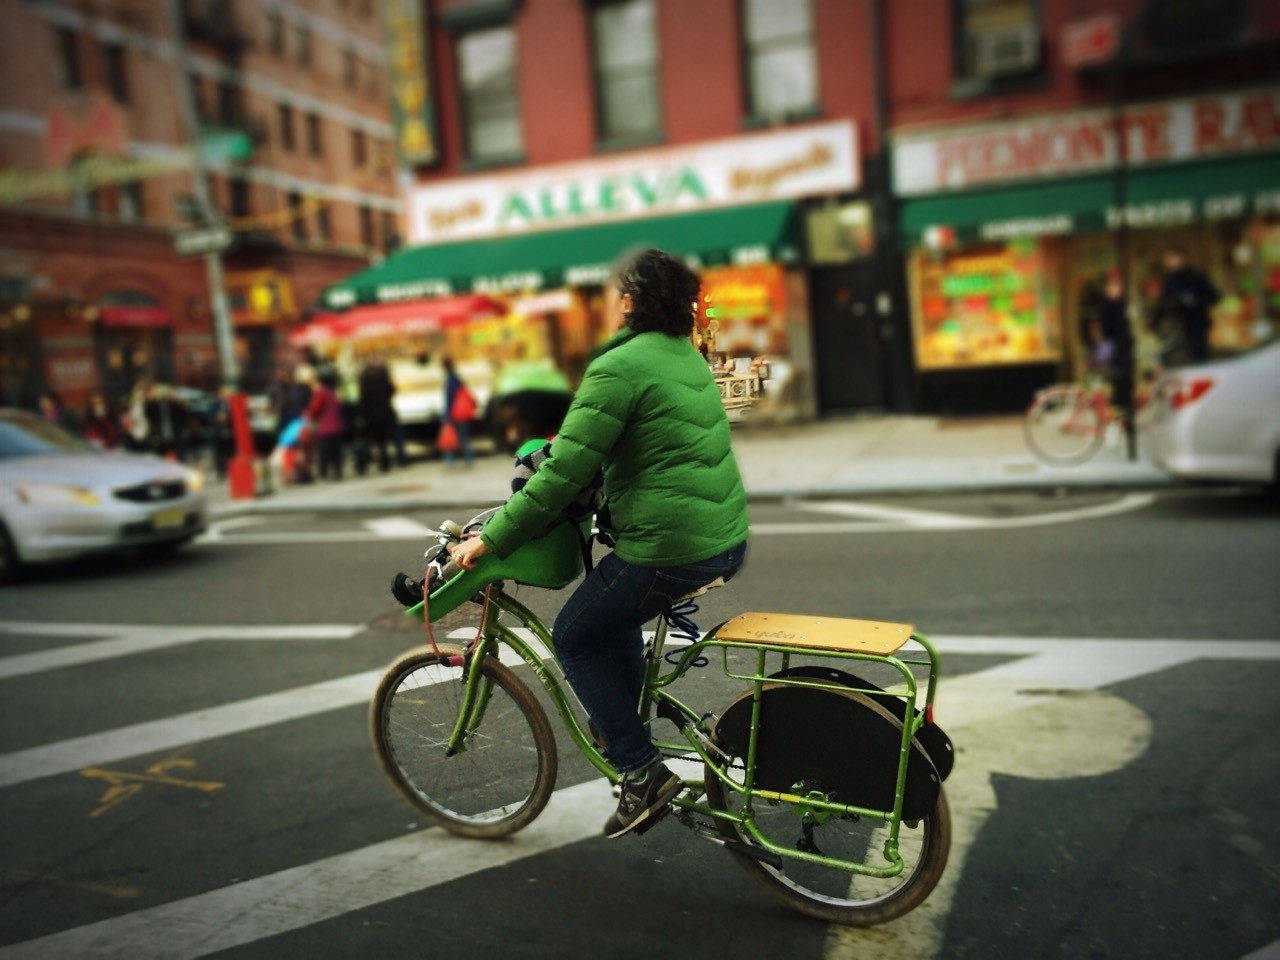 A ride in little Italy #iphoneography #streetphotography #NYC